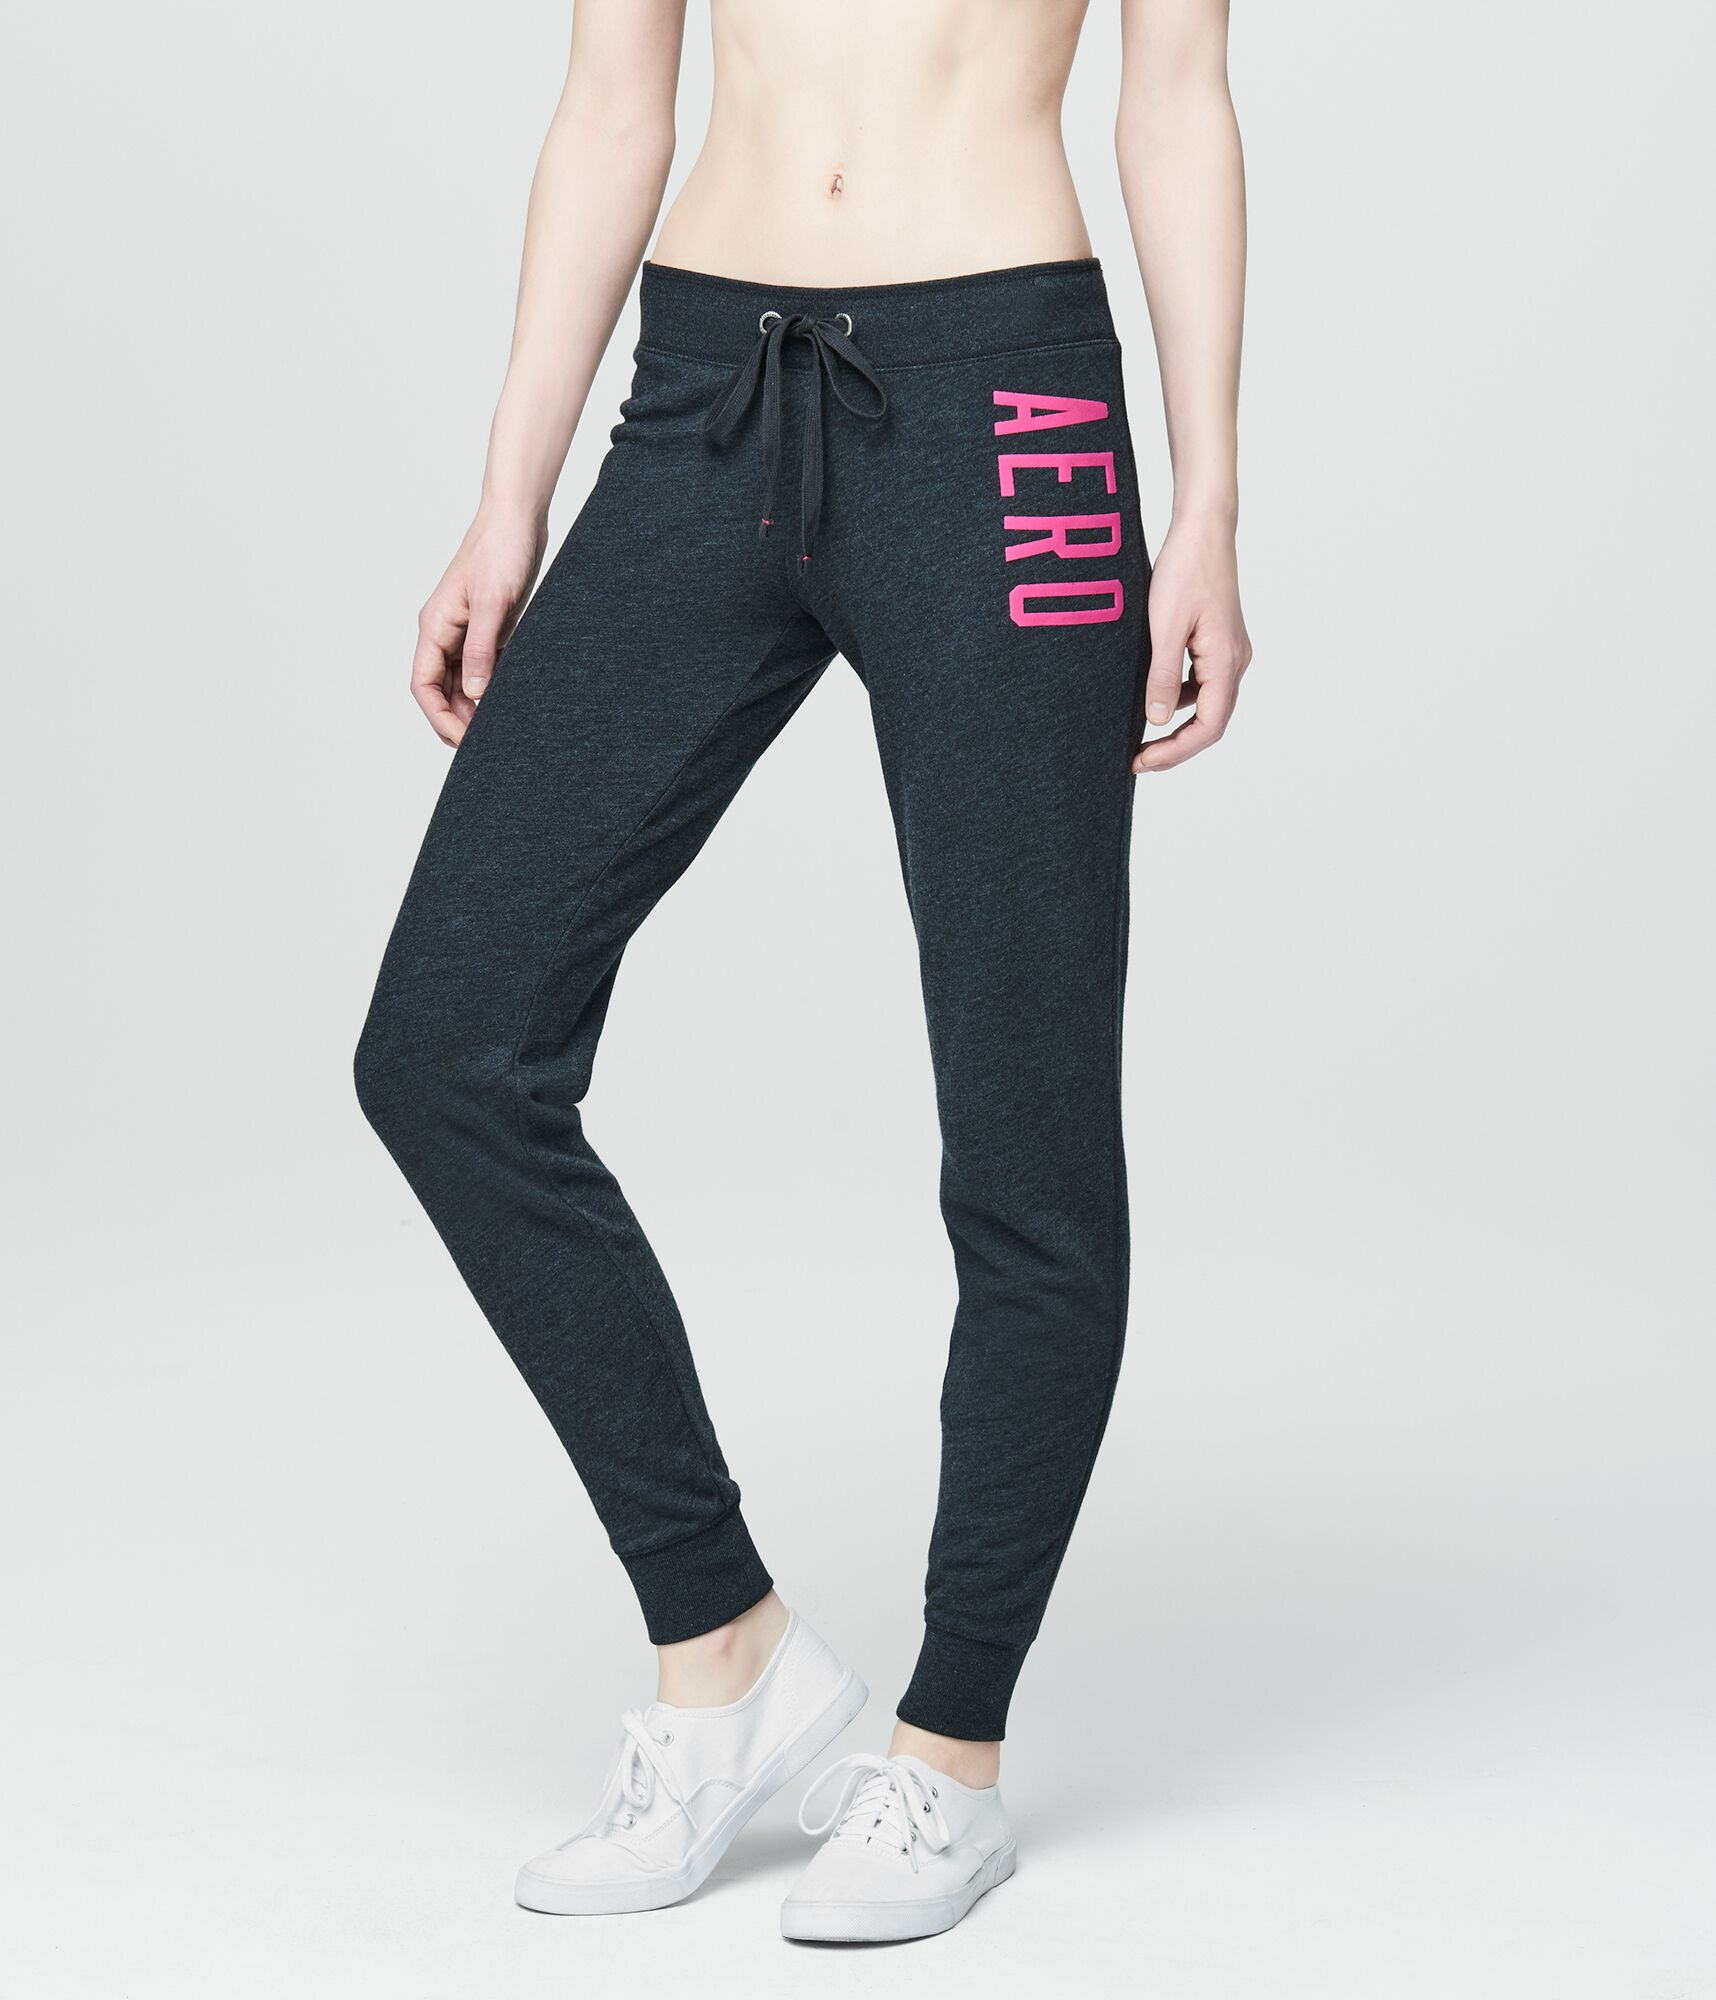 to wear - Boyfriend Aeropostale sweatpants video